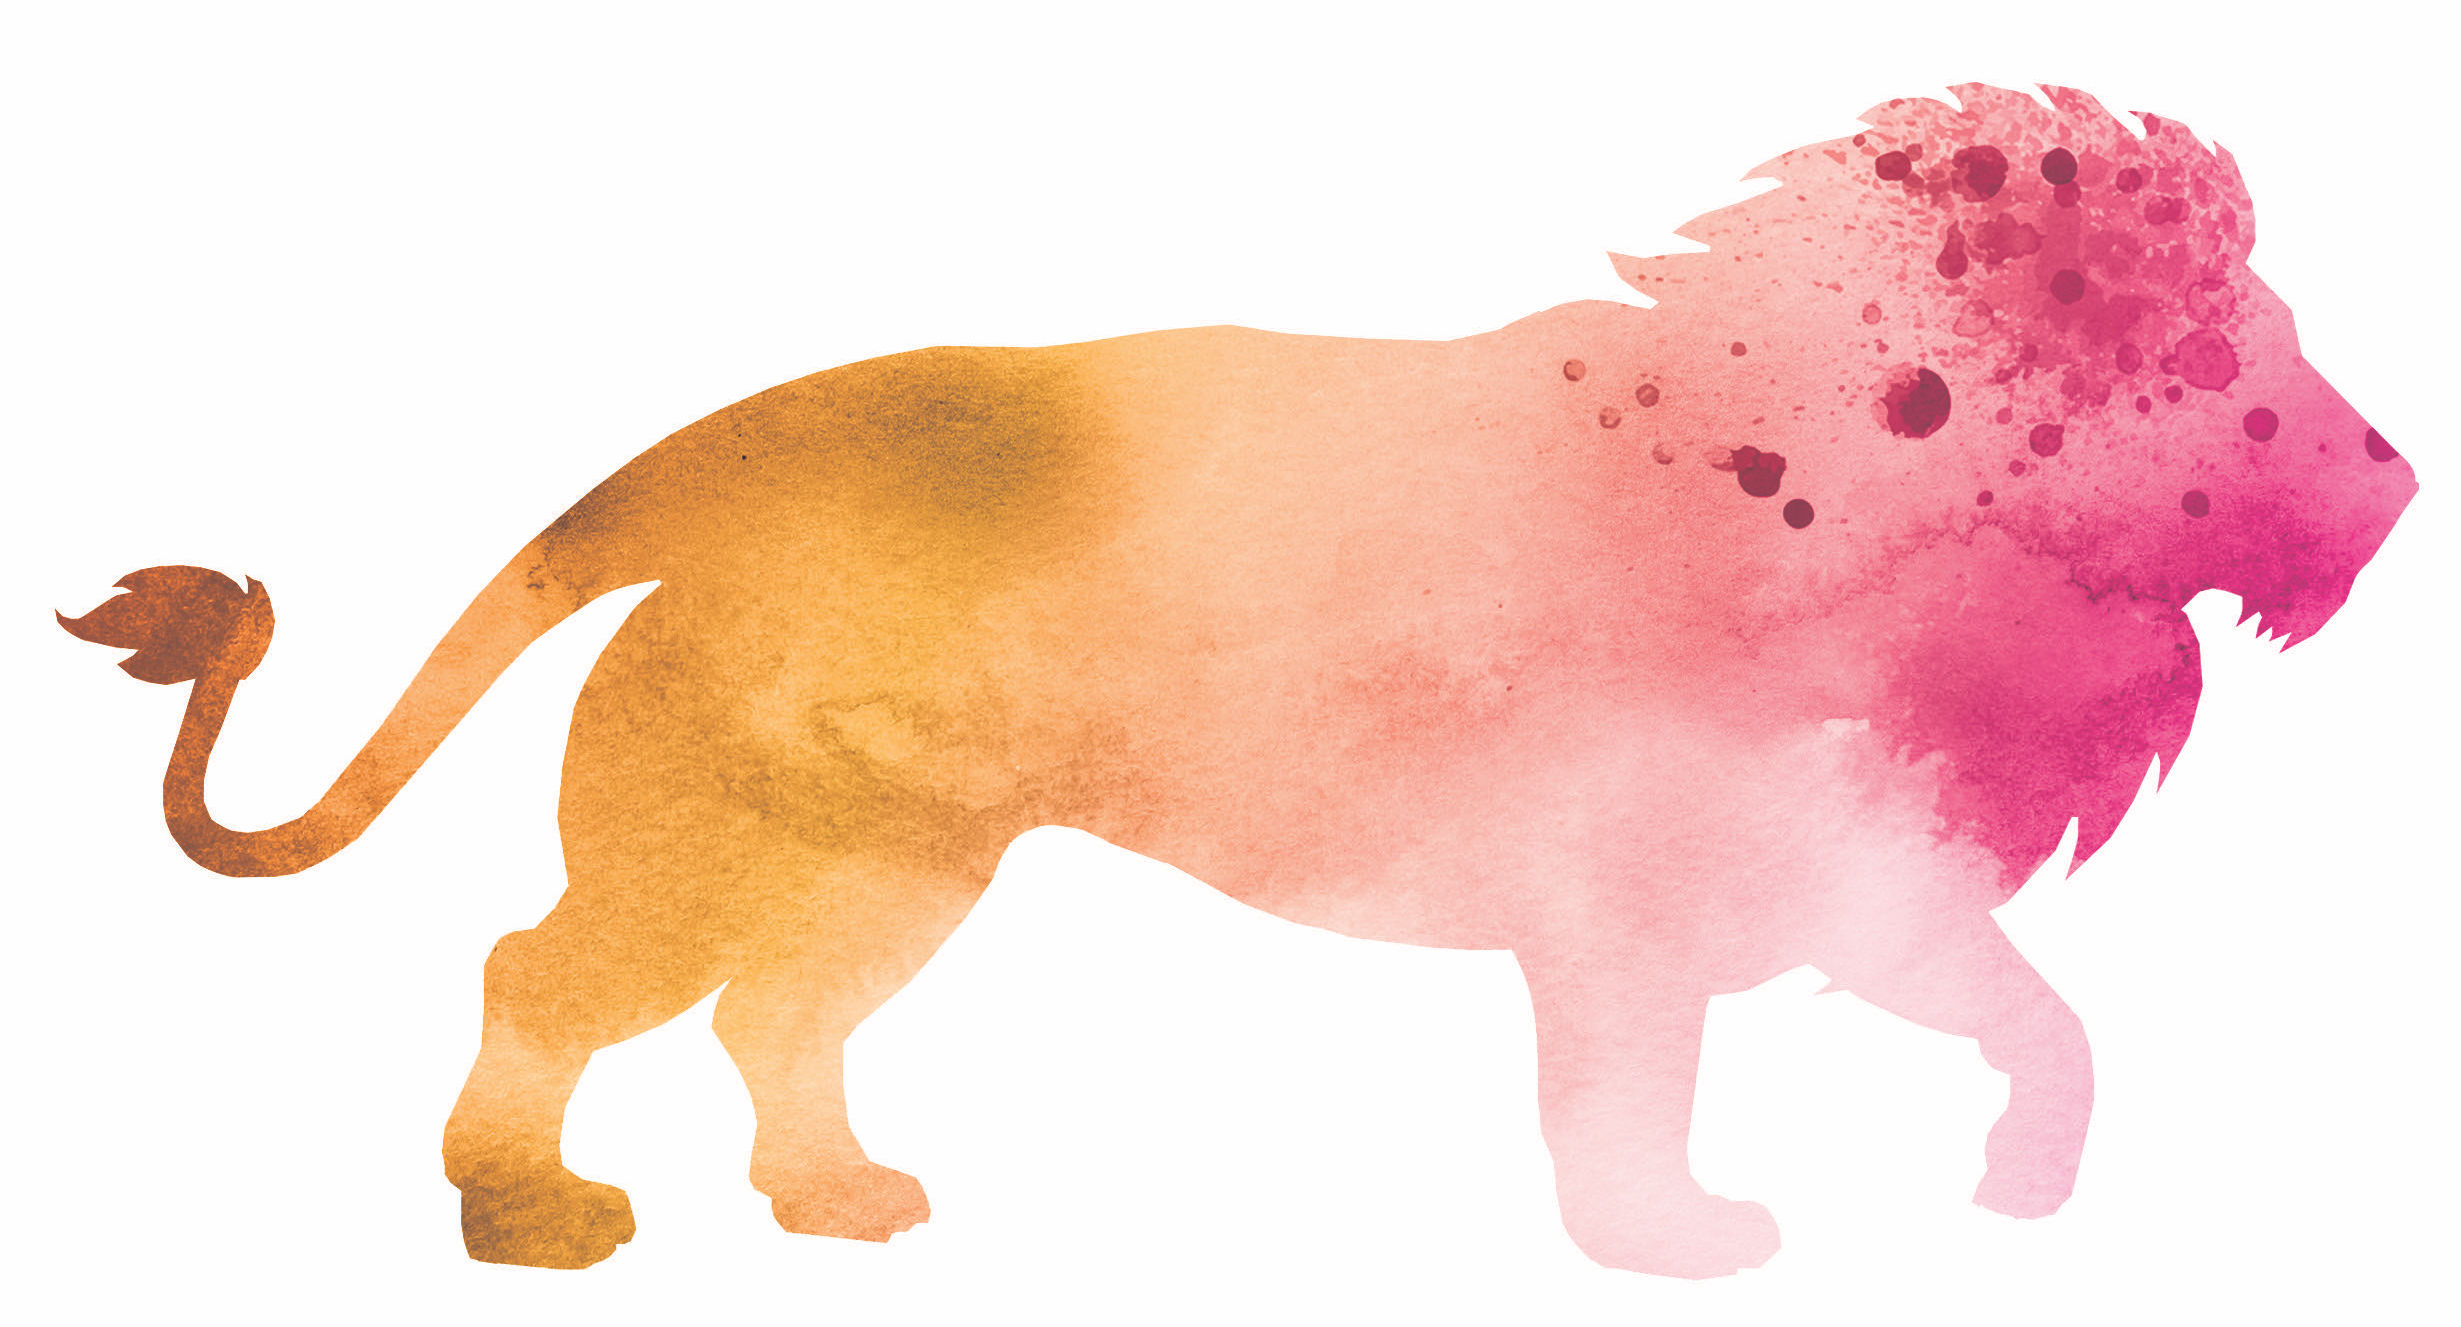 watercolor lion graphic for Fort Worth Zoo's A Wilder Vision campaign